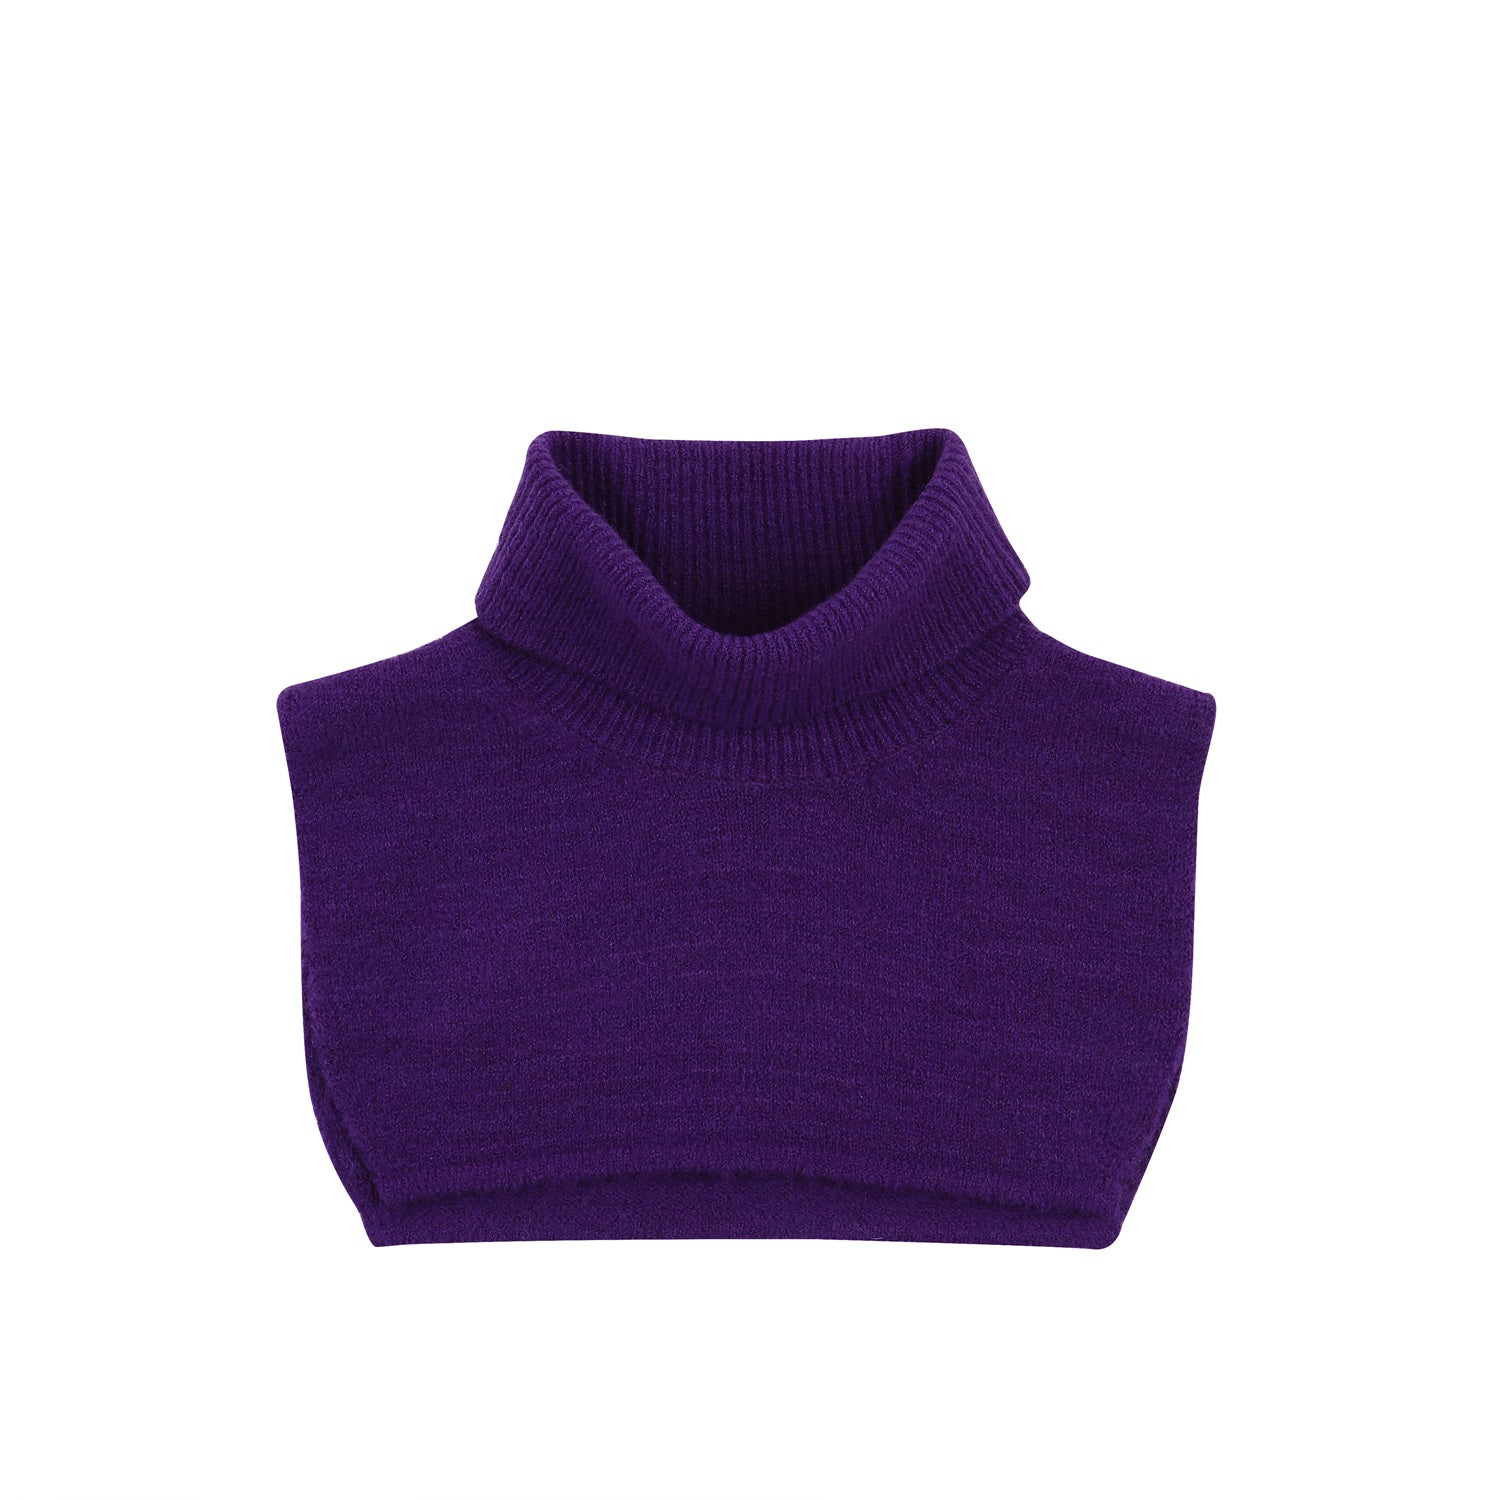 2-way turtle neck knit - Violet